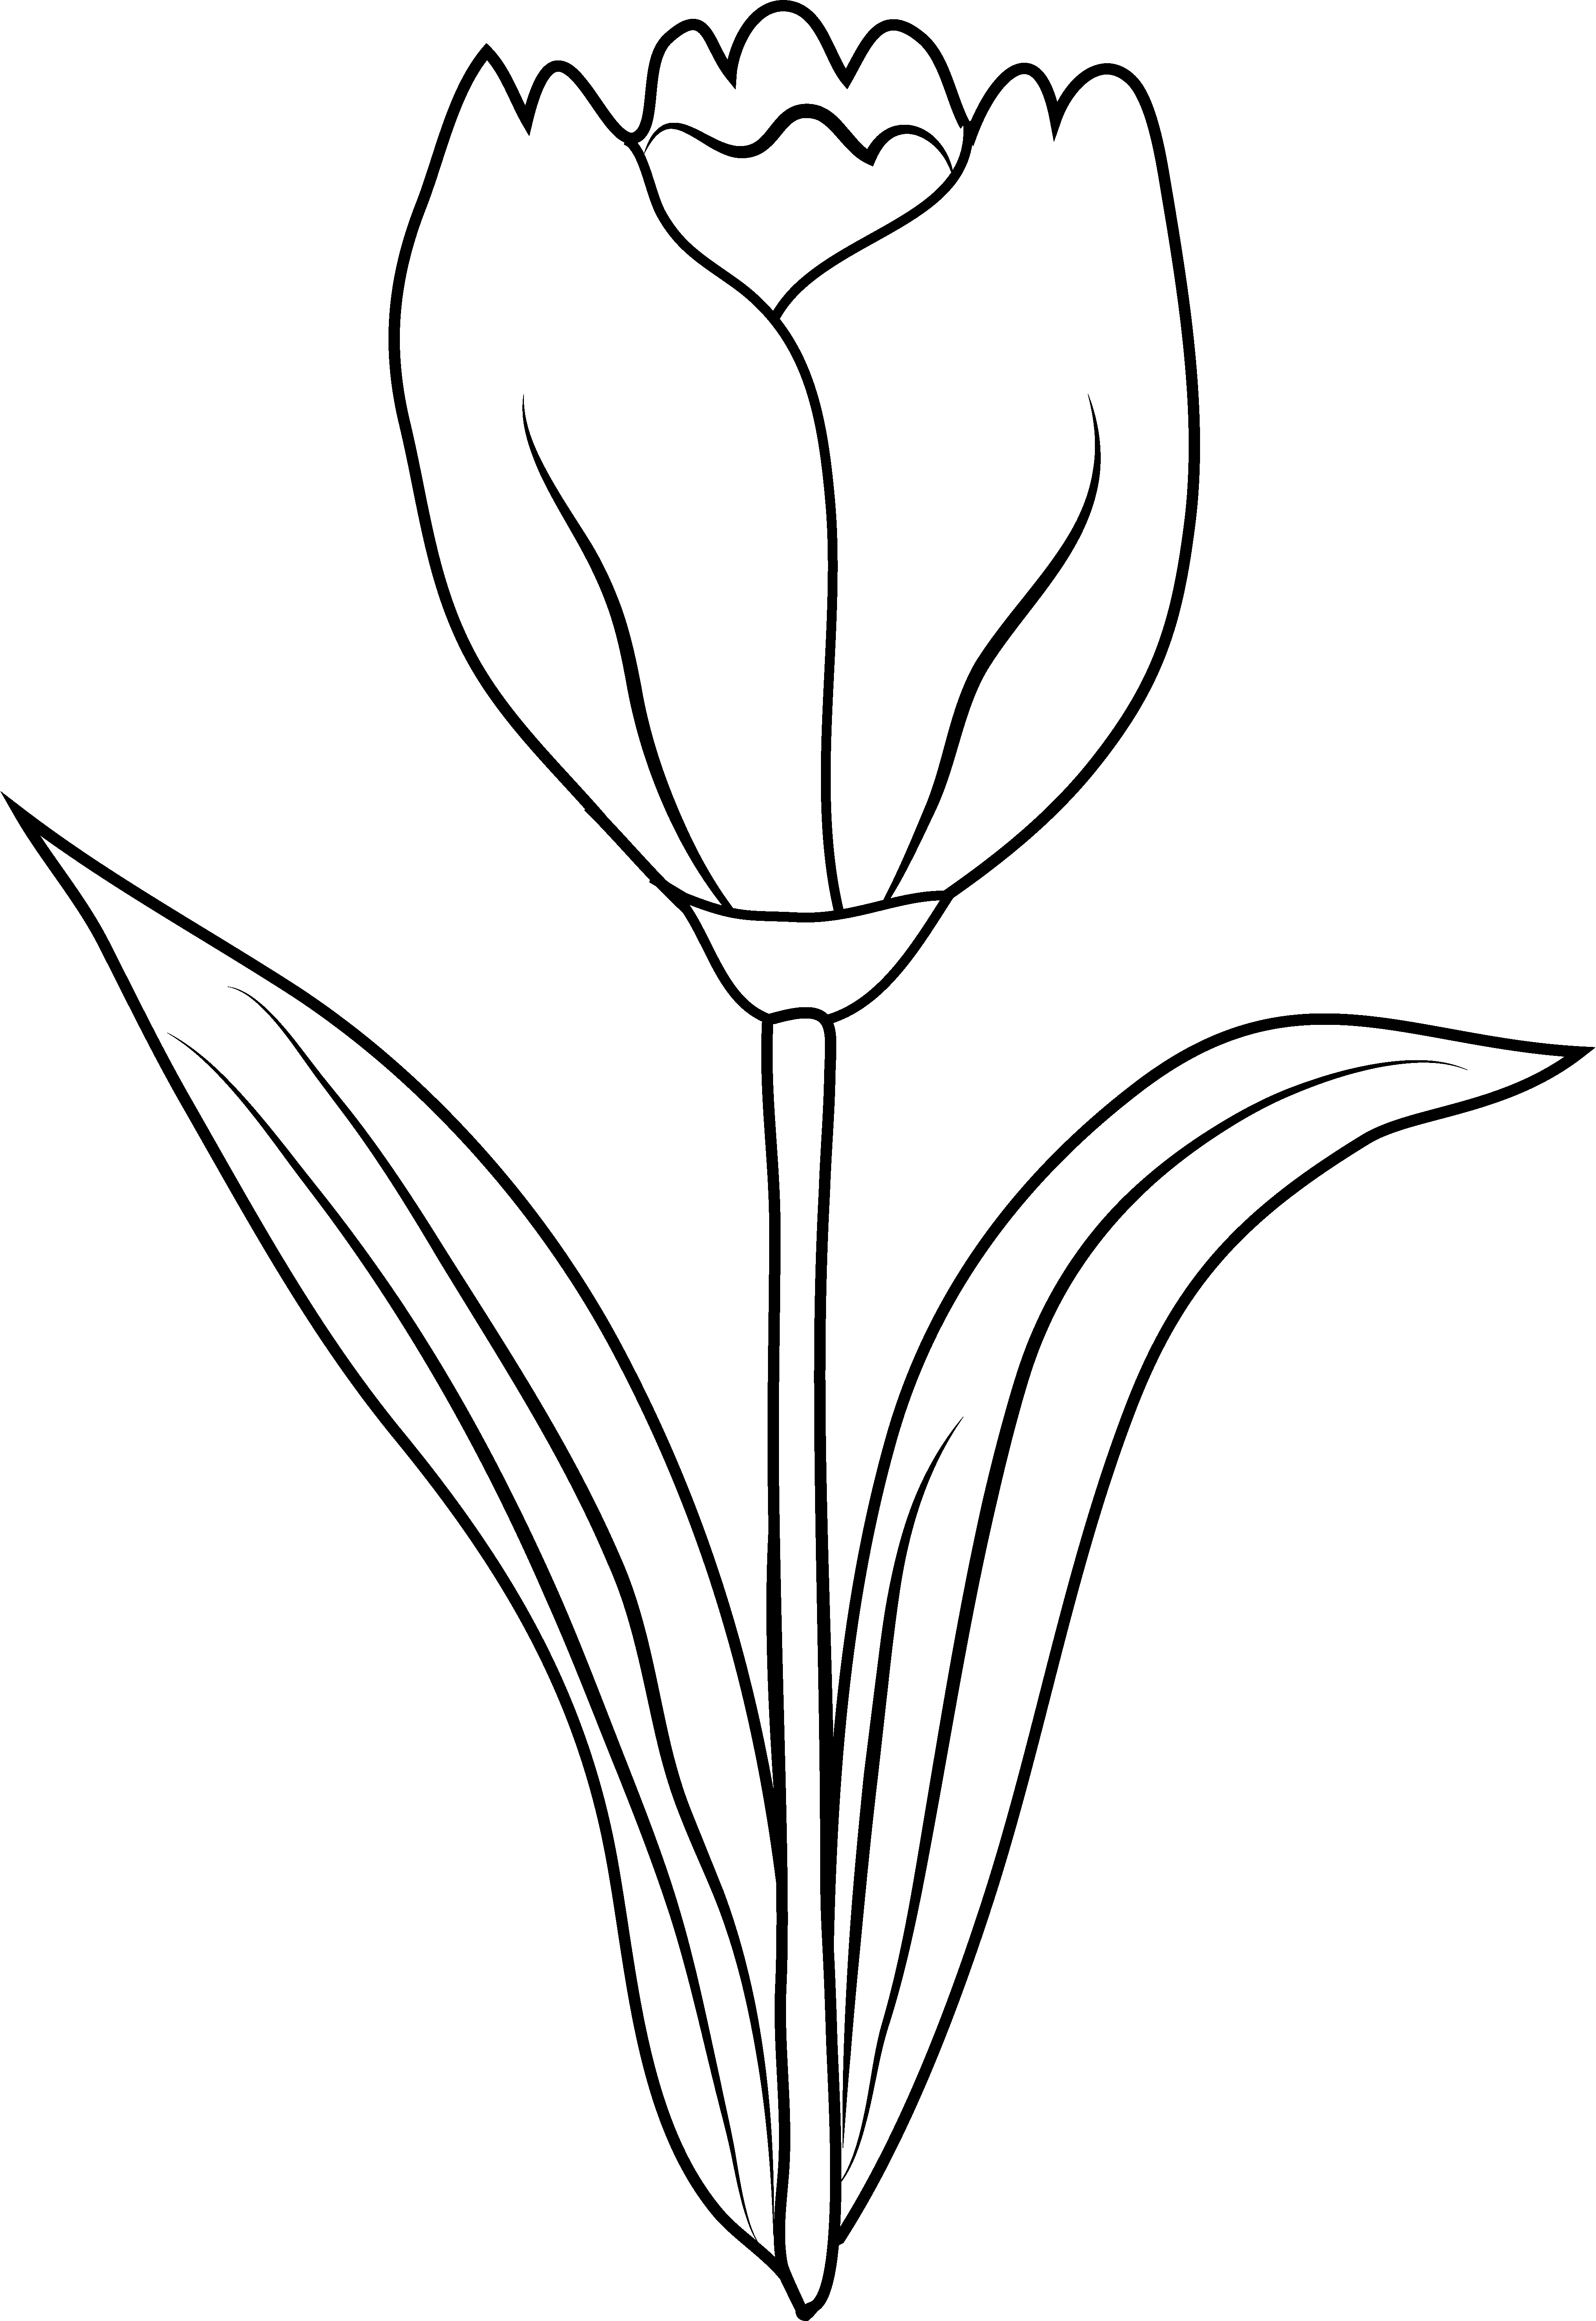 vector free library Tulip clip art panda. Tulips clipart black and white